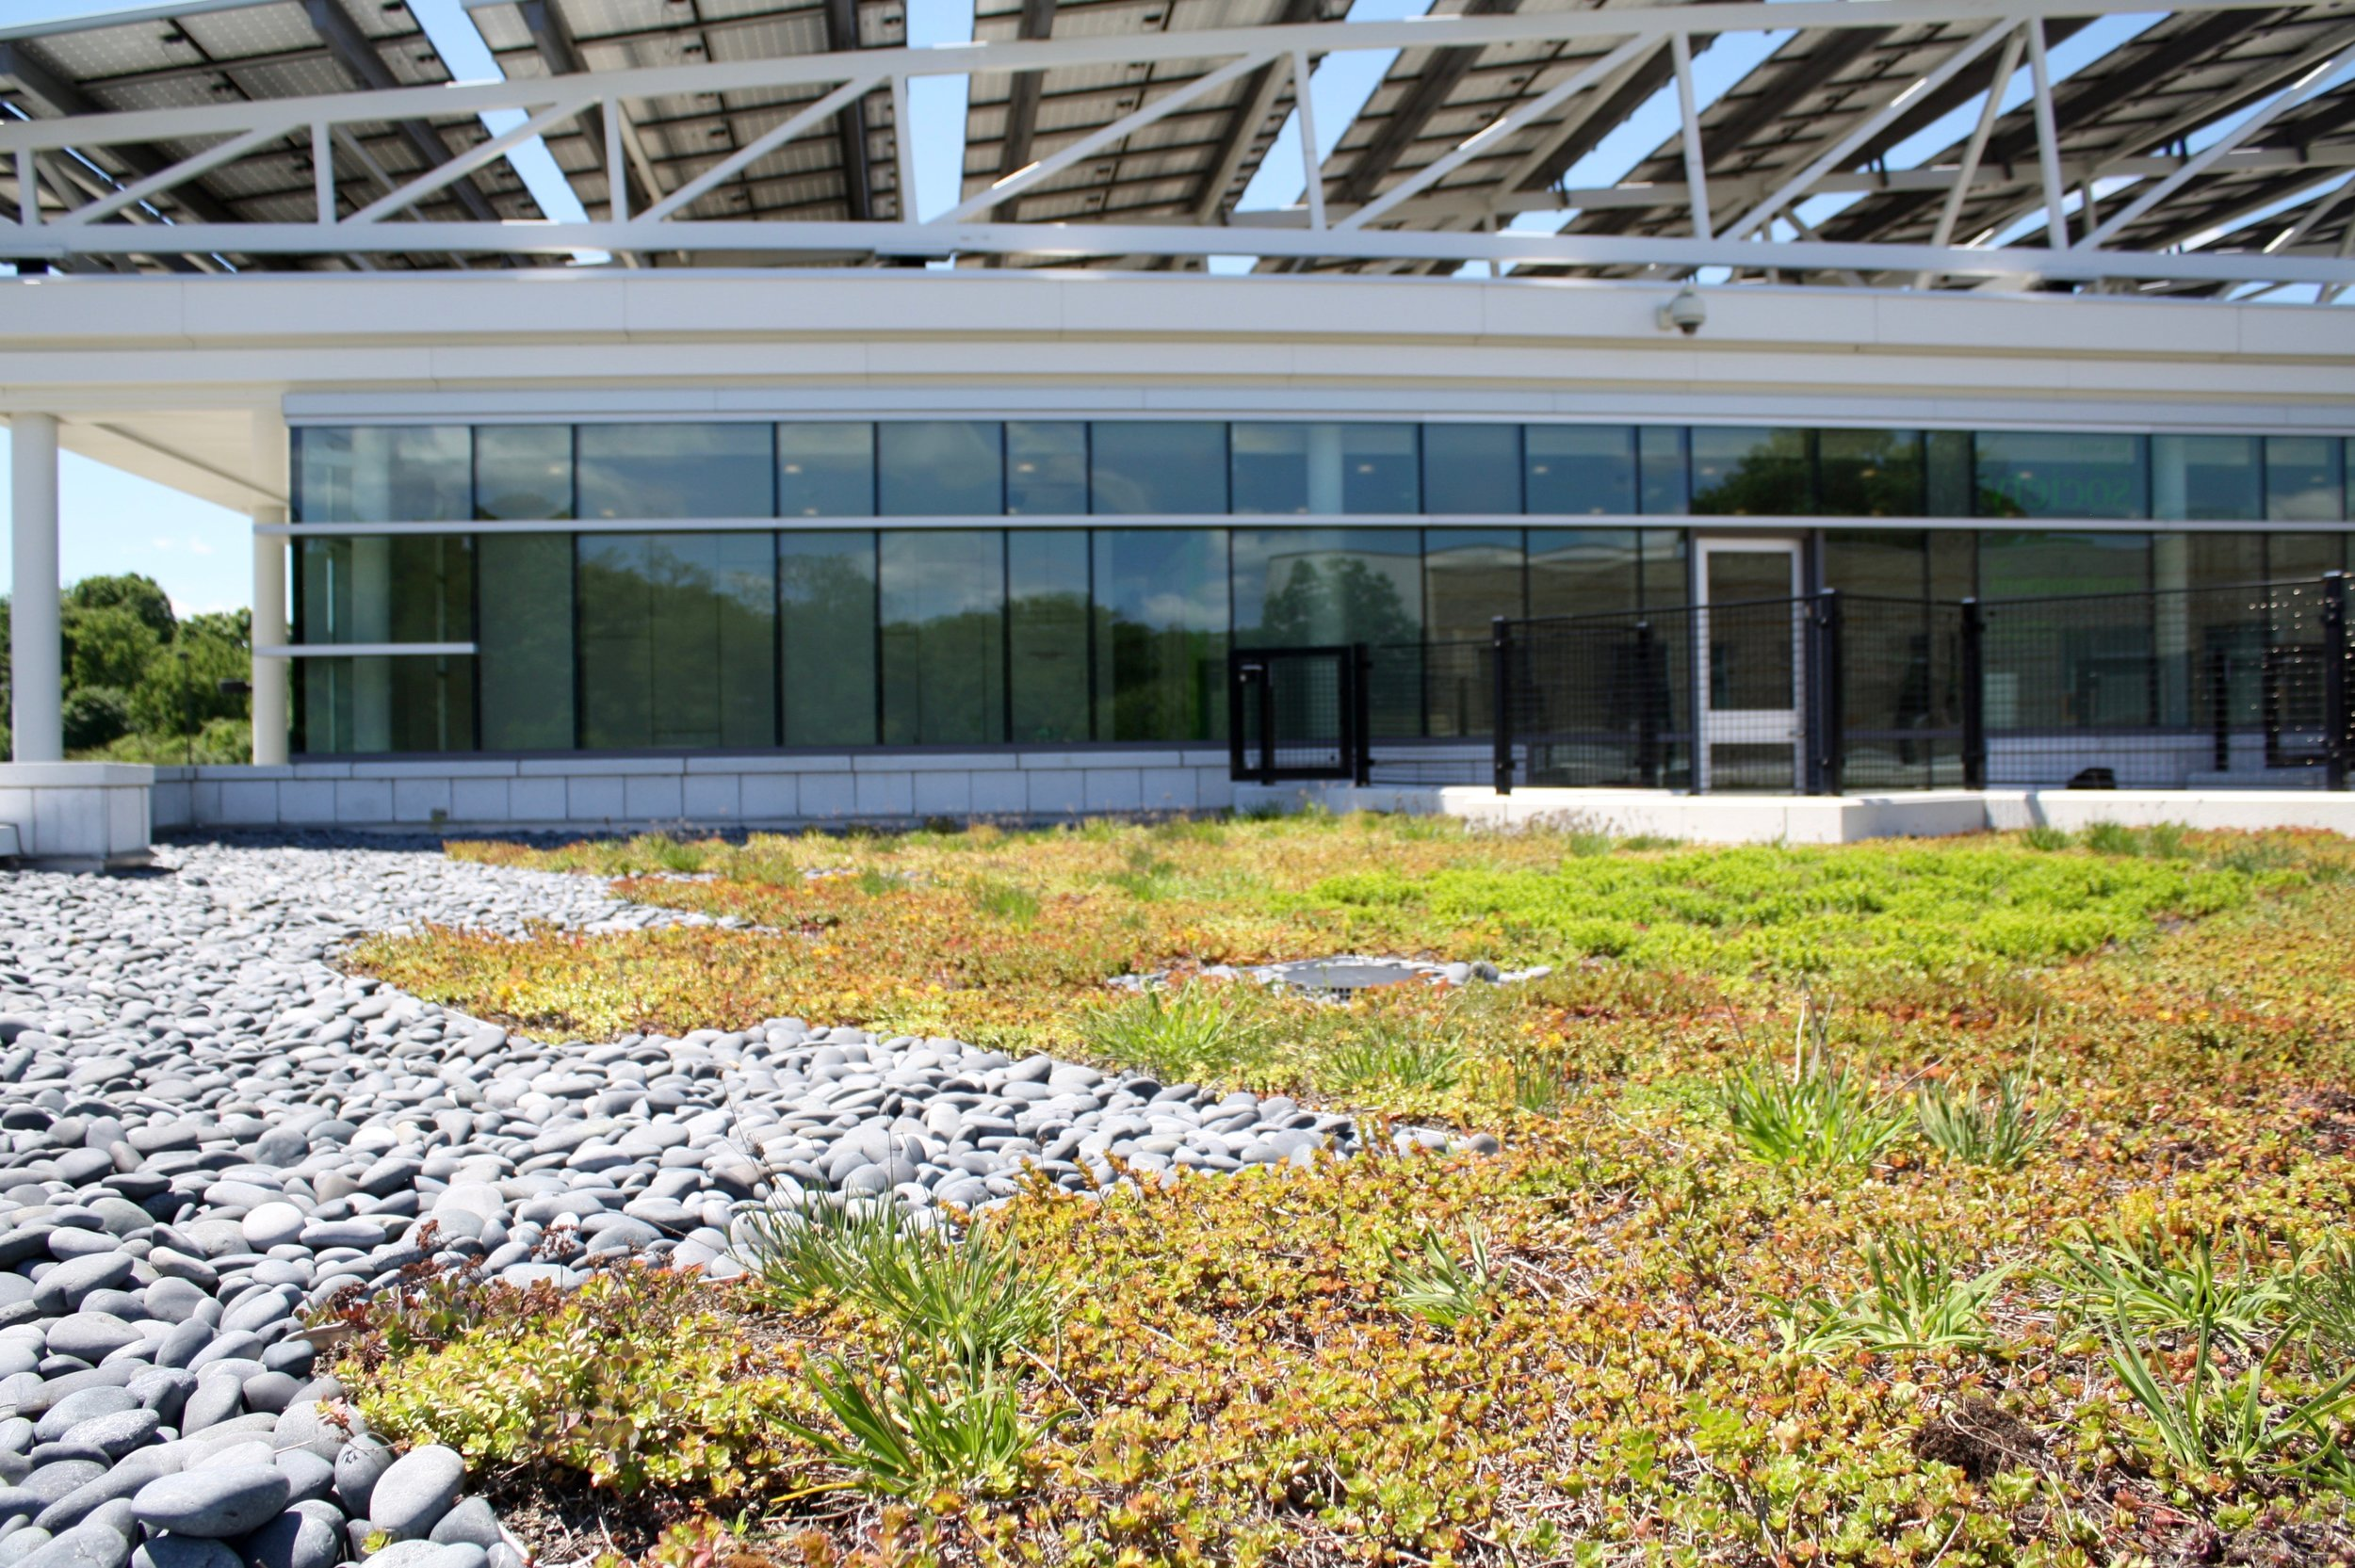 recover-green-roofs-north-shore-cc-2014-7.jpg